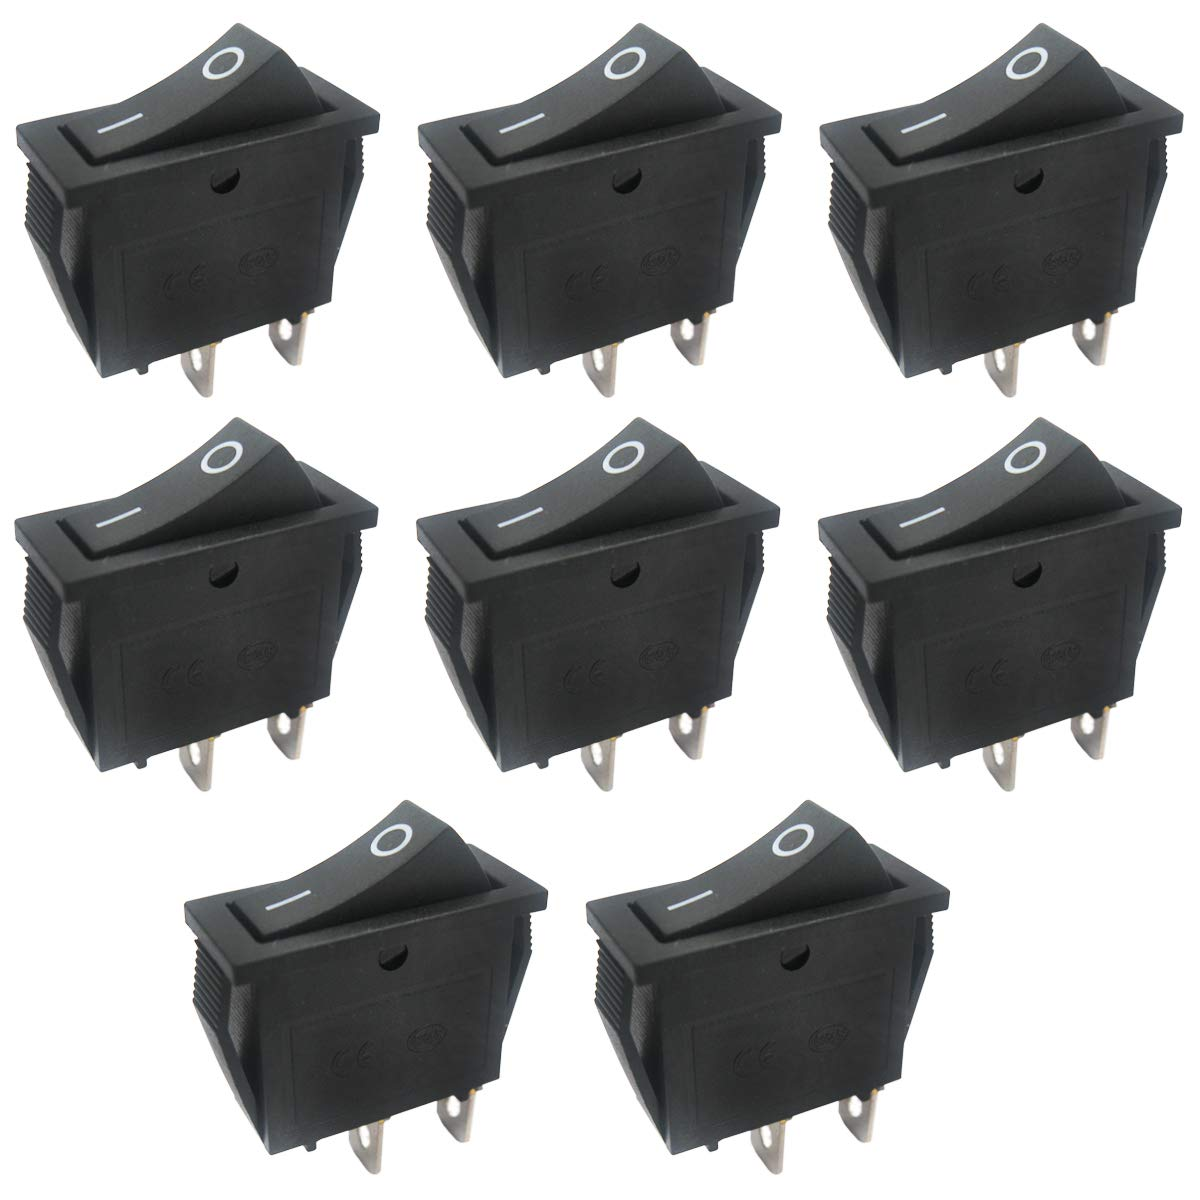 Taiss / 8Pcs AC 250V/15A, 125V/20A,Black ON/Off SPST 2 Pin 2 Position Mini Boat Rocker Switches Car Auto Boat Rocker Toggle Switch Snap (Warranty 1 Years)KCD3-101